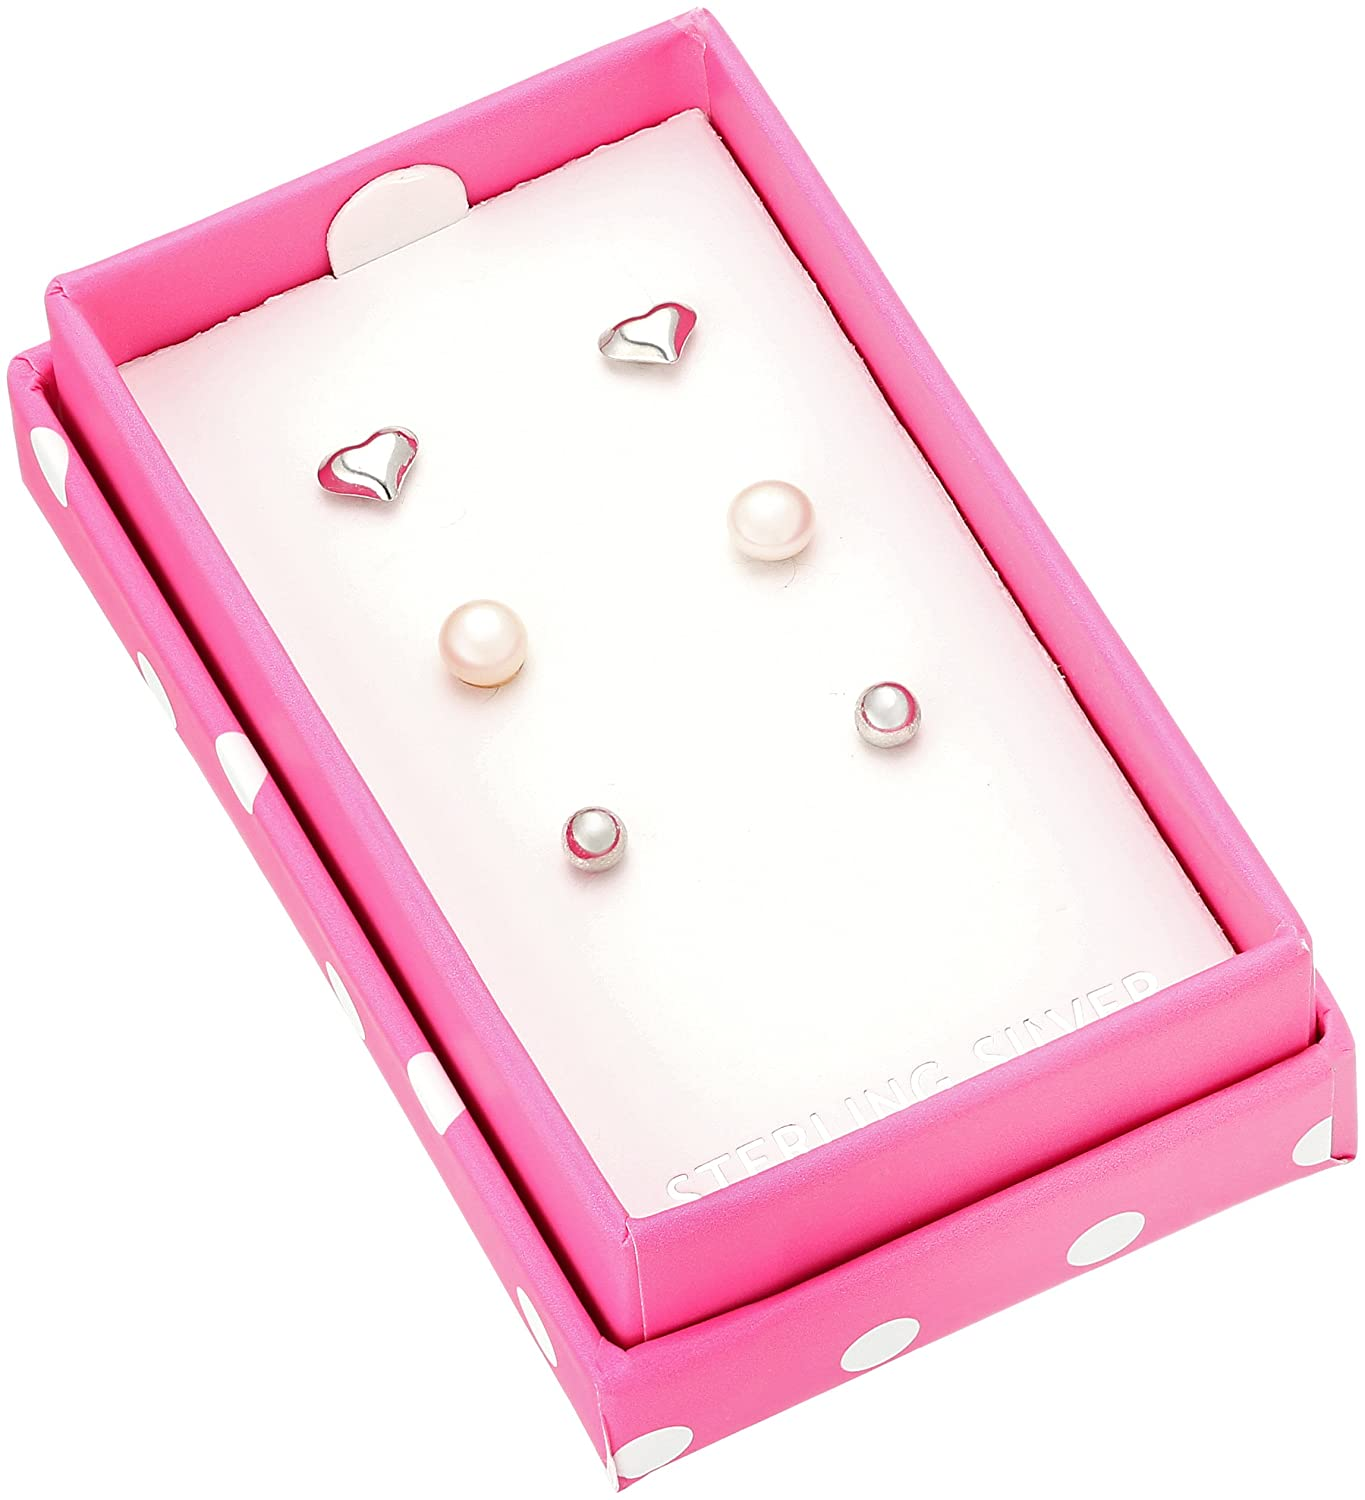 Ball and Heart Set with Pink Polka-Dot Gift Box Stud Earrings Girls Sterling Silver Childrens Pearl